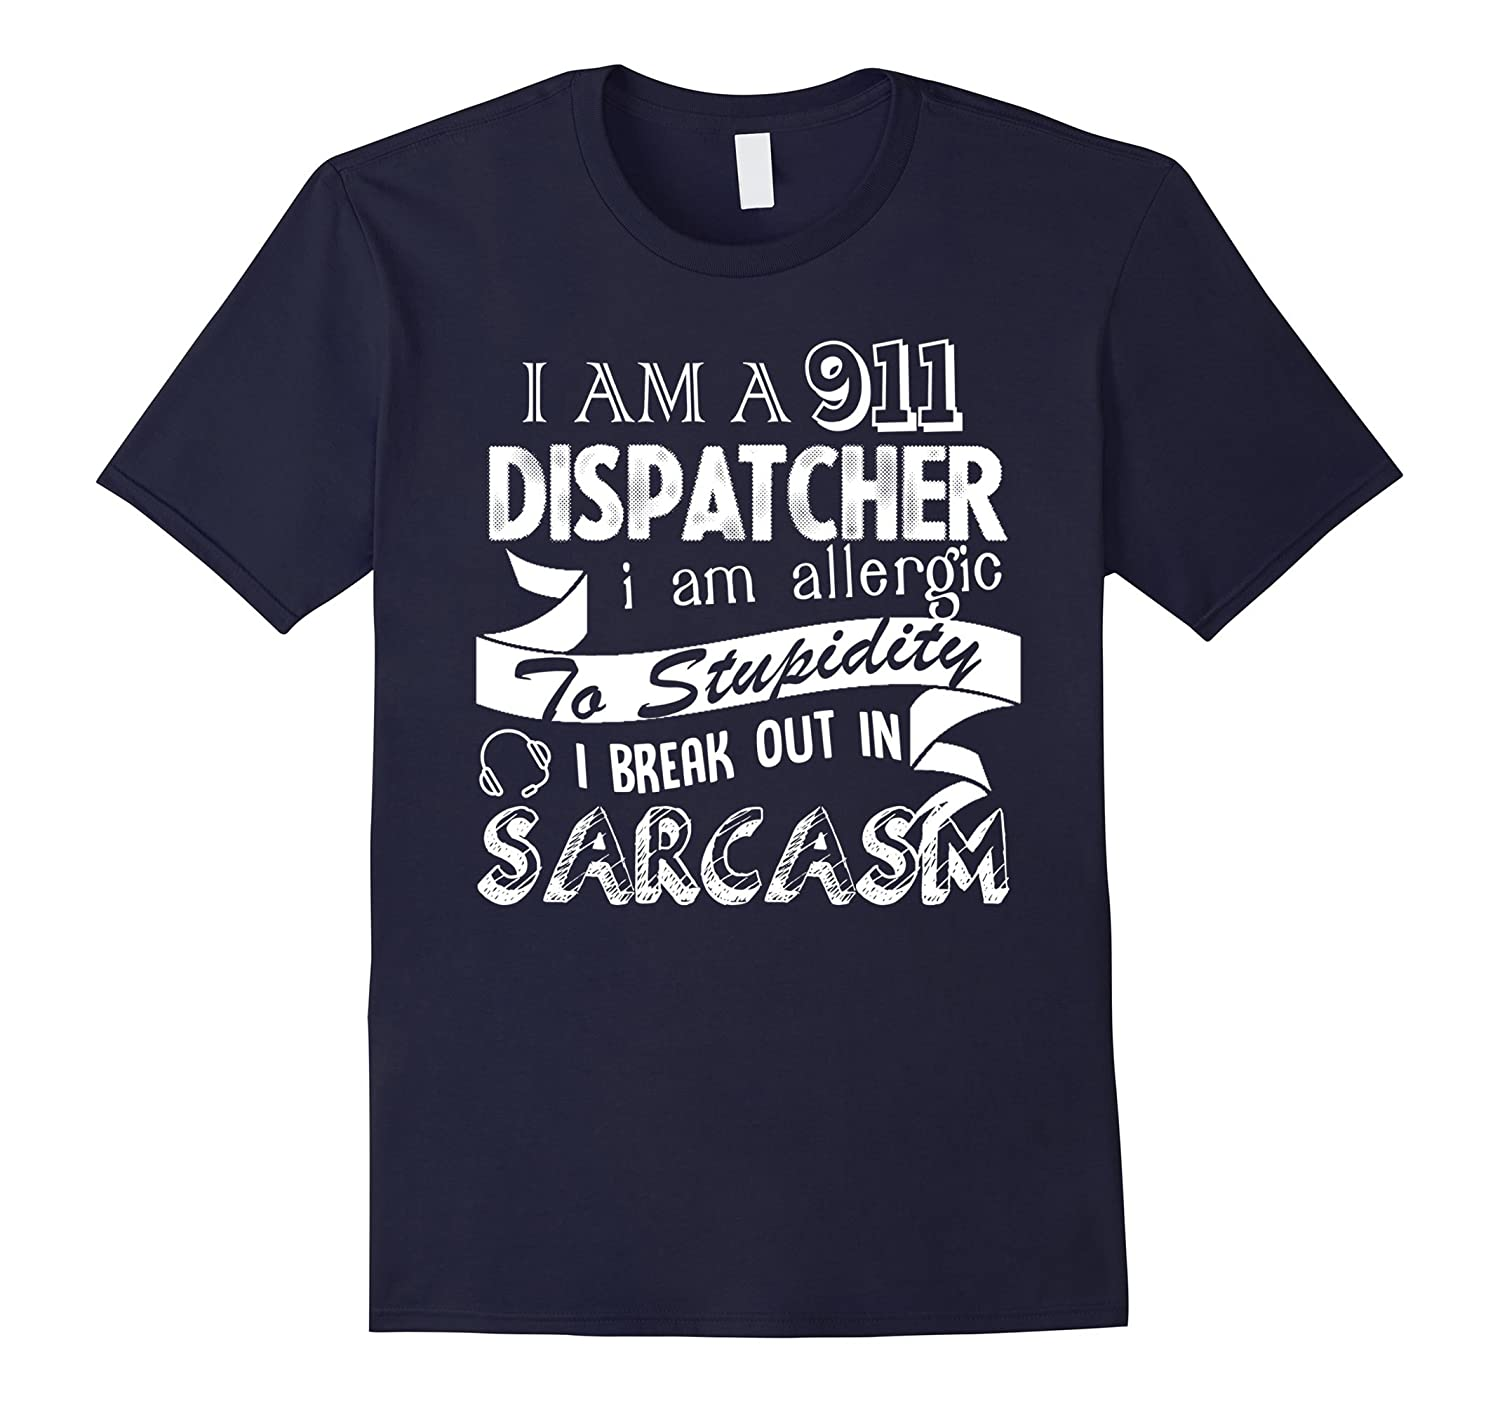 911 Dispatcher Shirts - I Am A 911 Dispatcher T shirt-BN